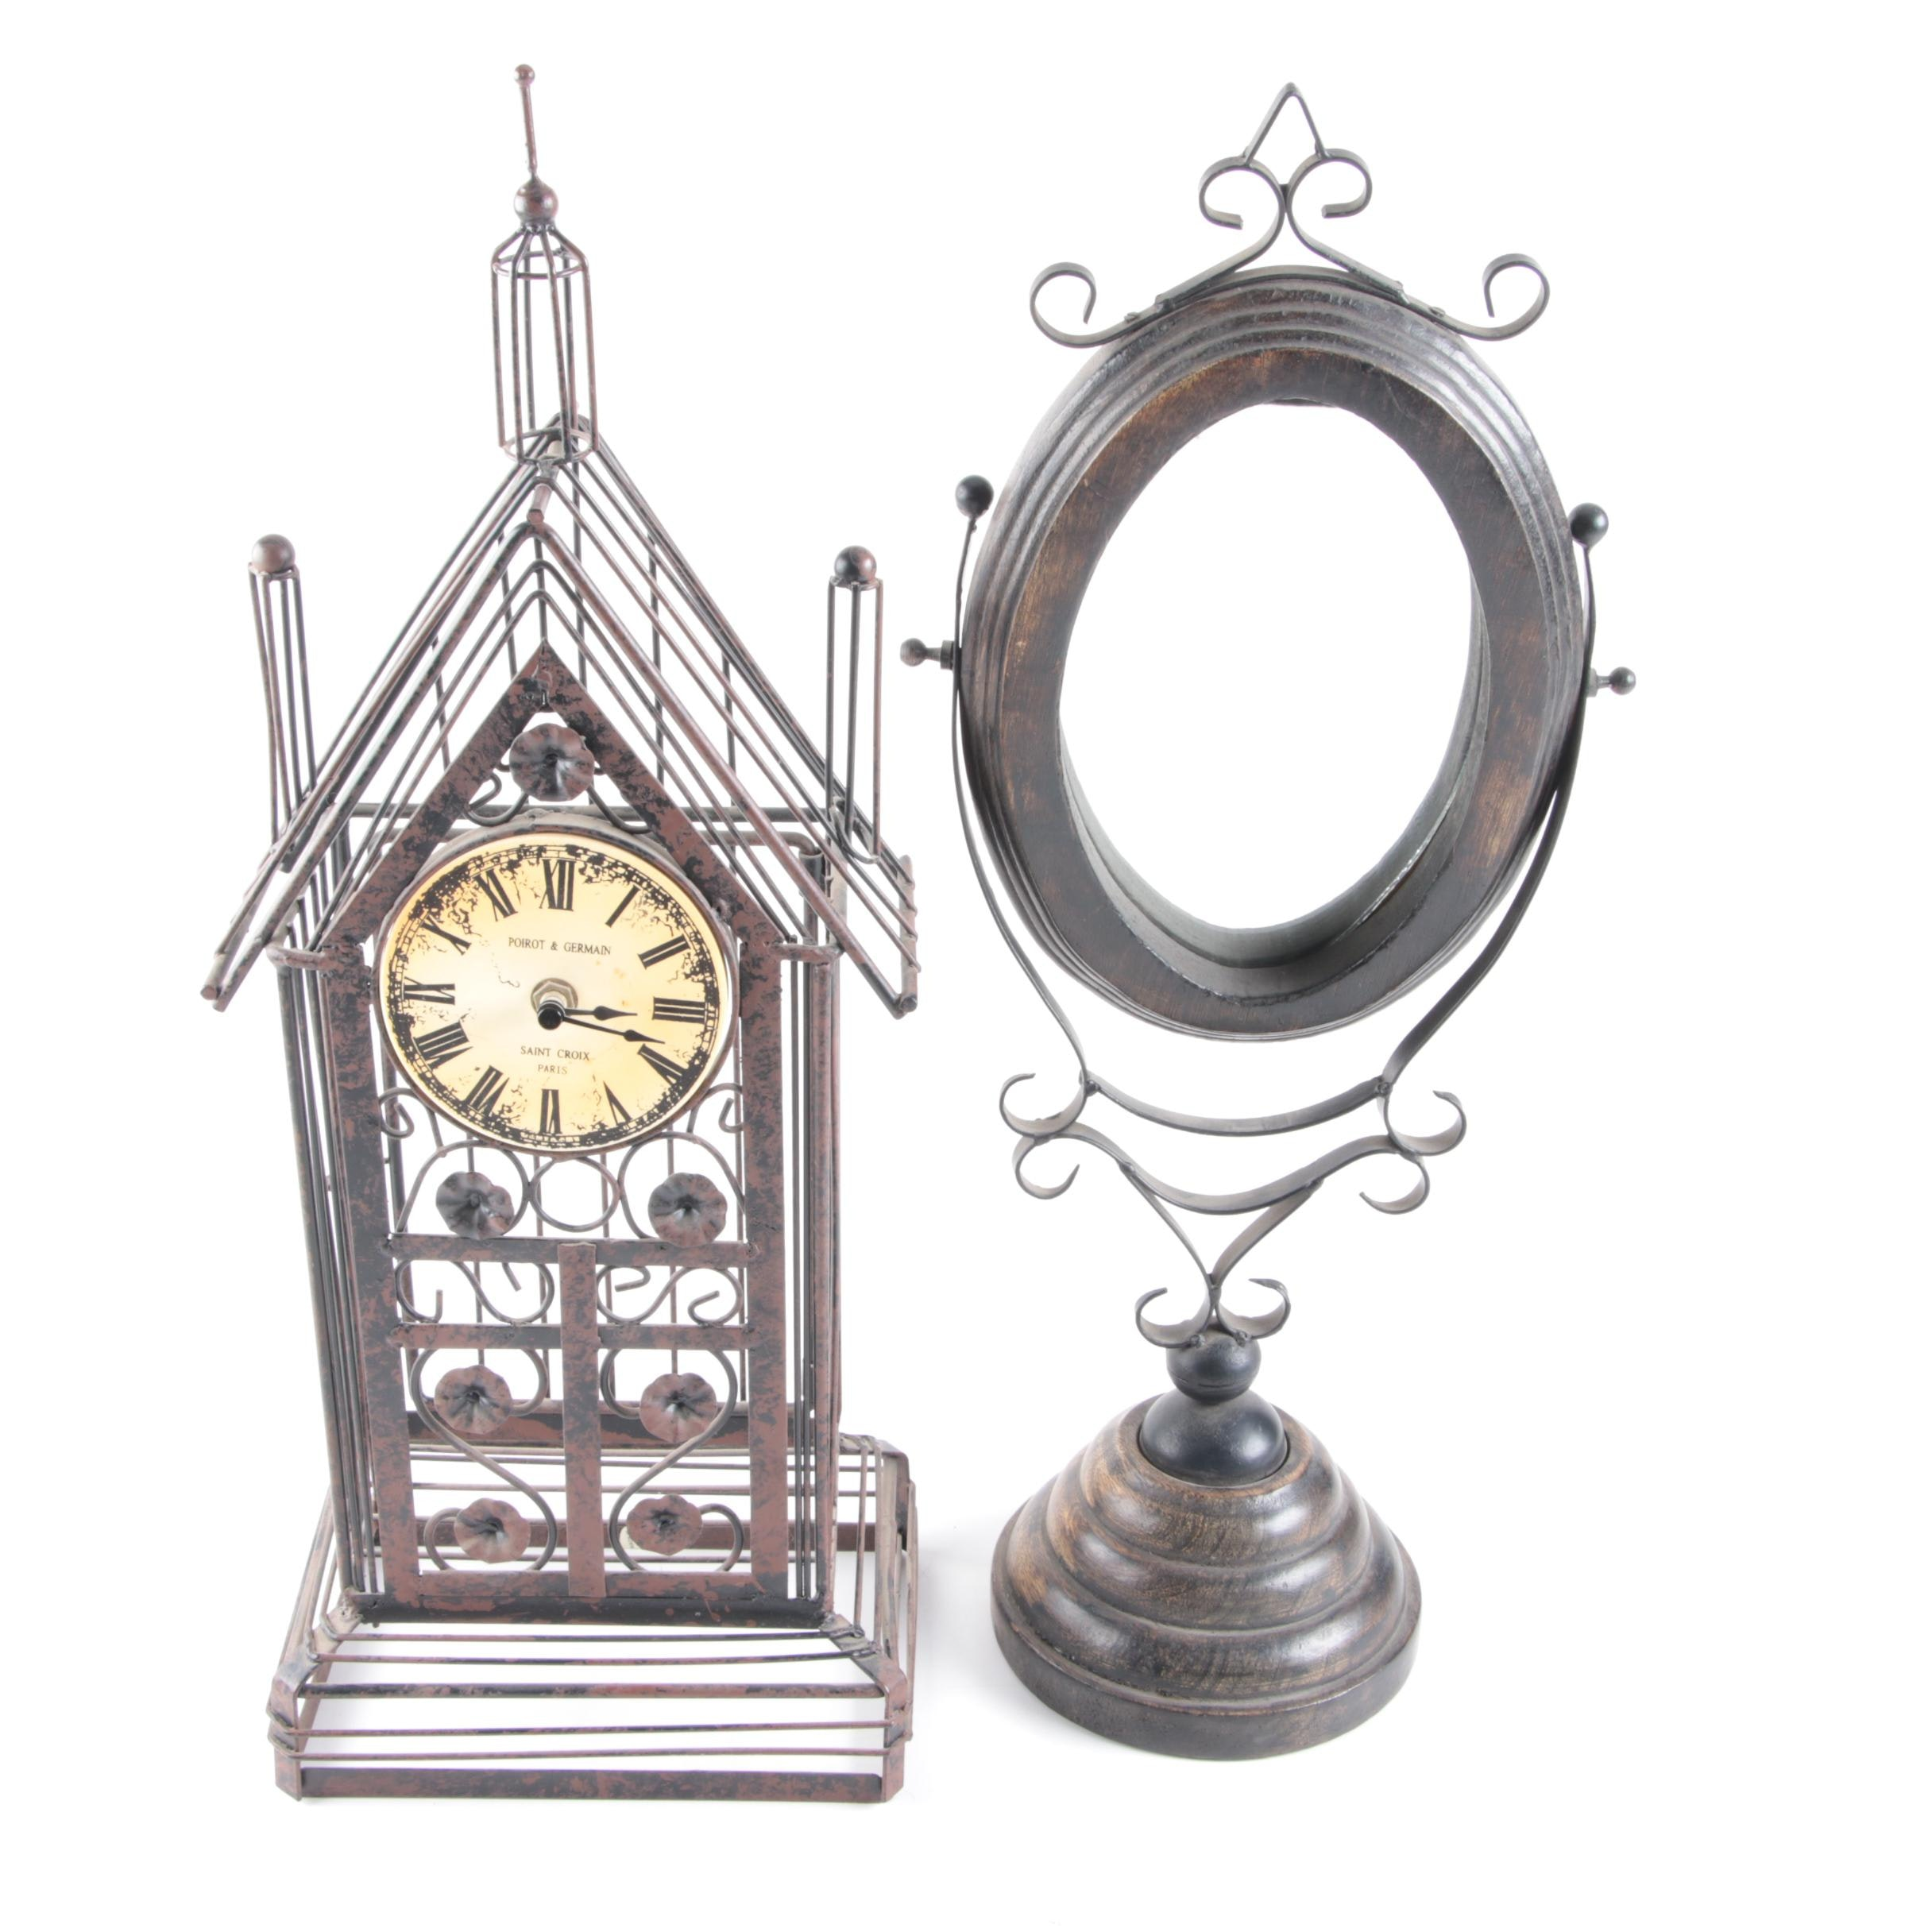 Poirot & Germain Clock and Footed Mirror